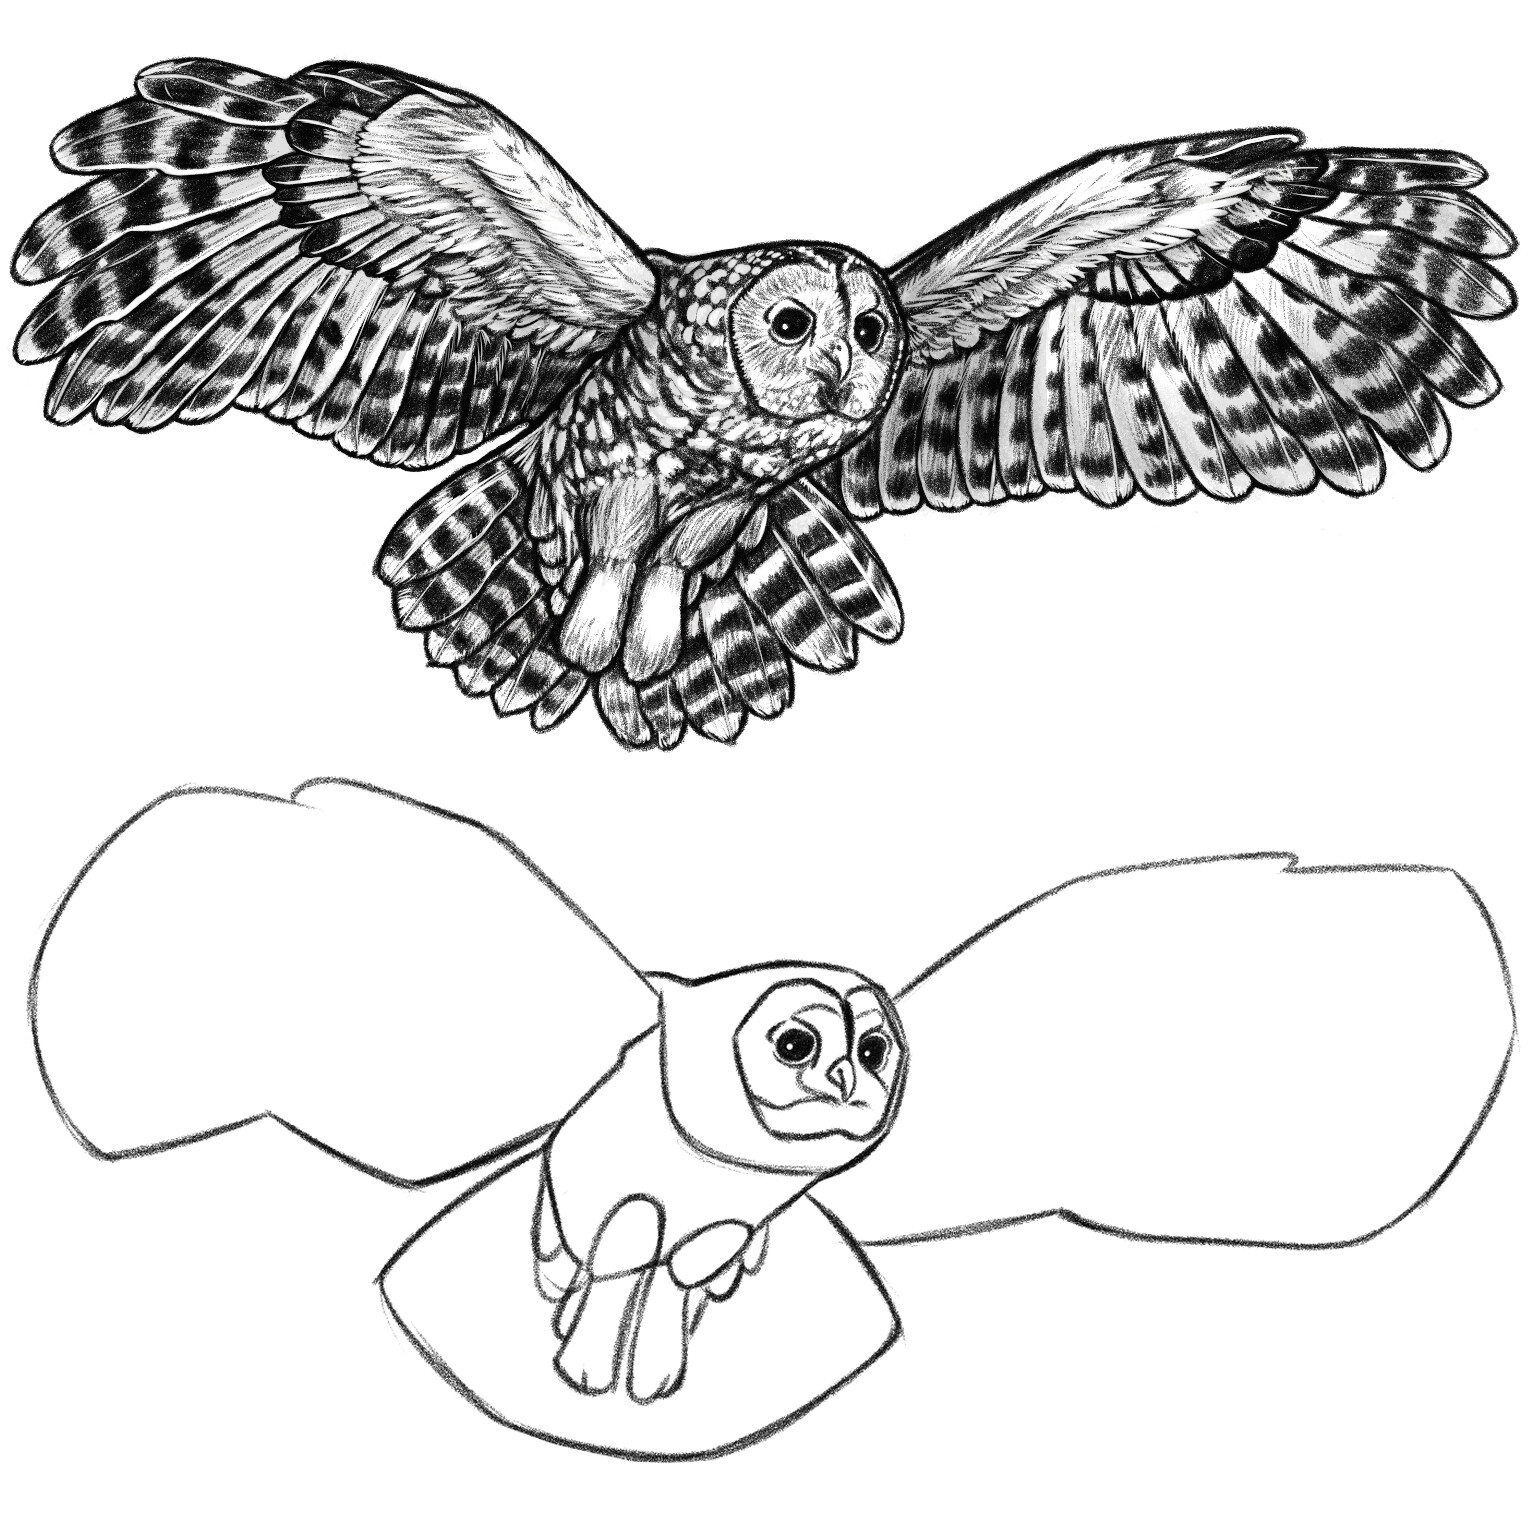 The original sketch of the owl in flight where I first broke the animal down into shapes and then filled in the detail.